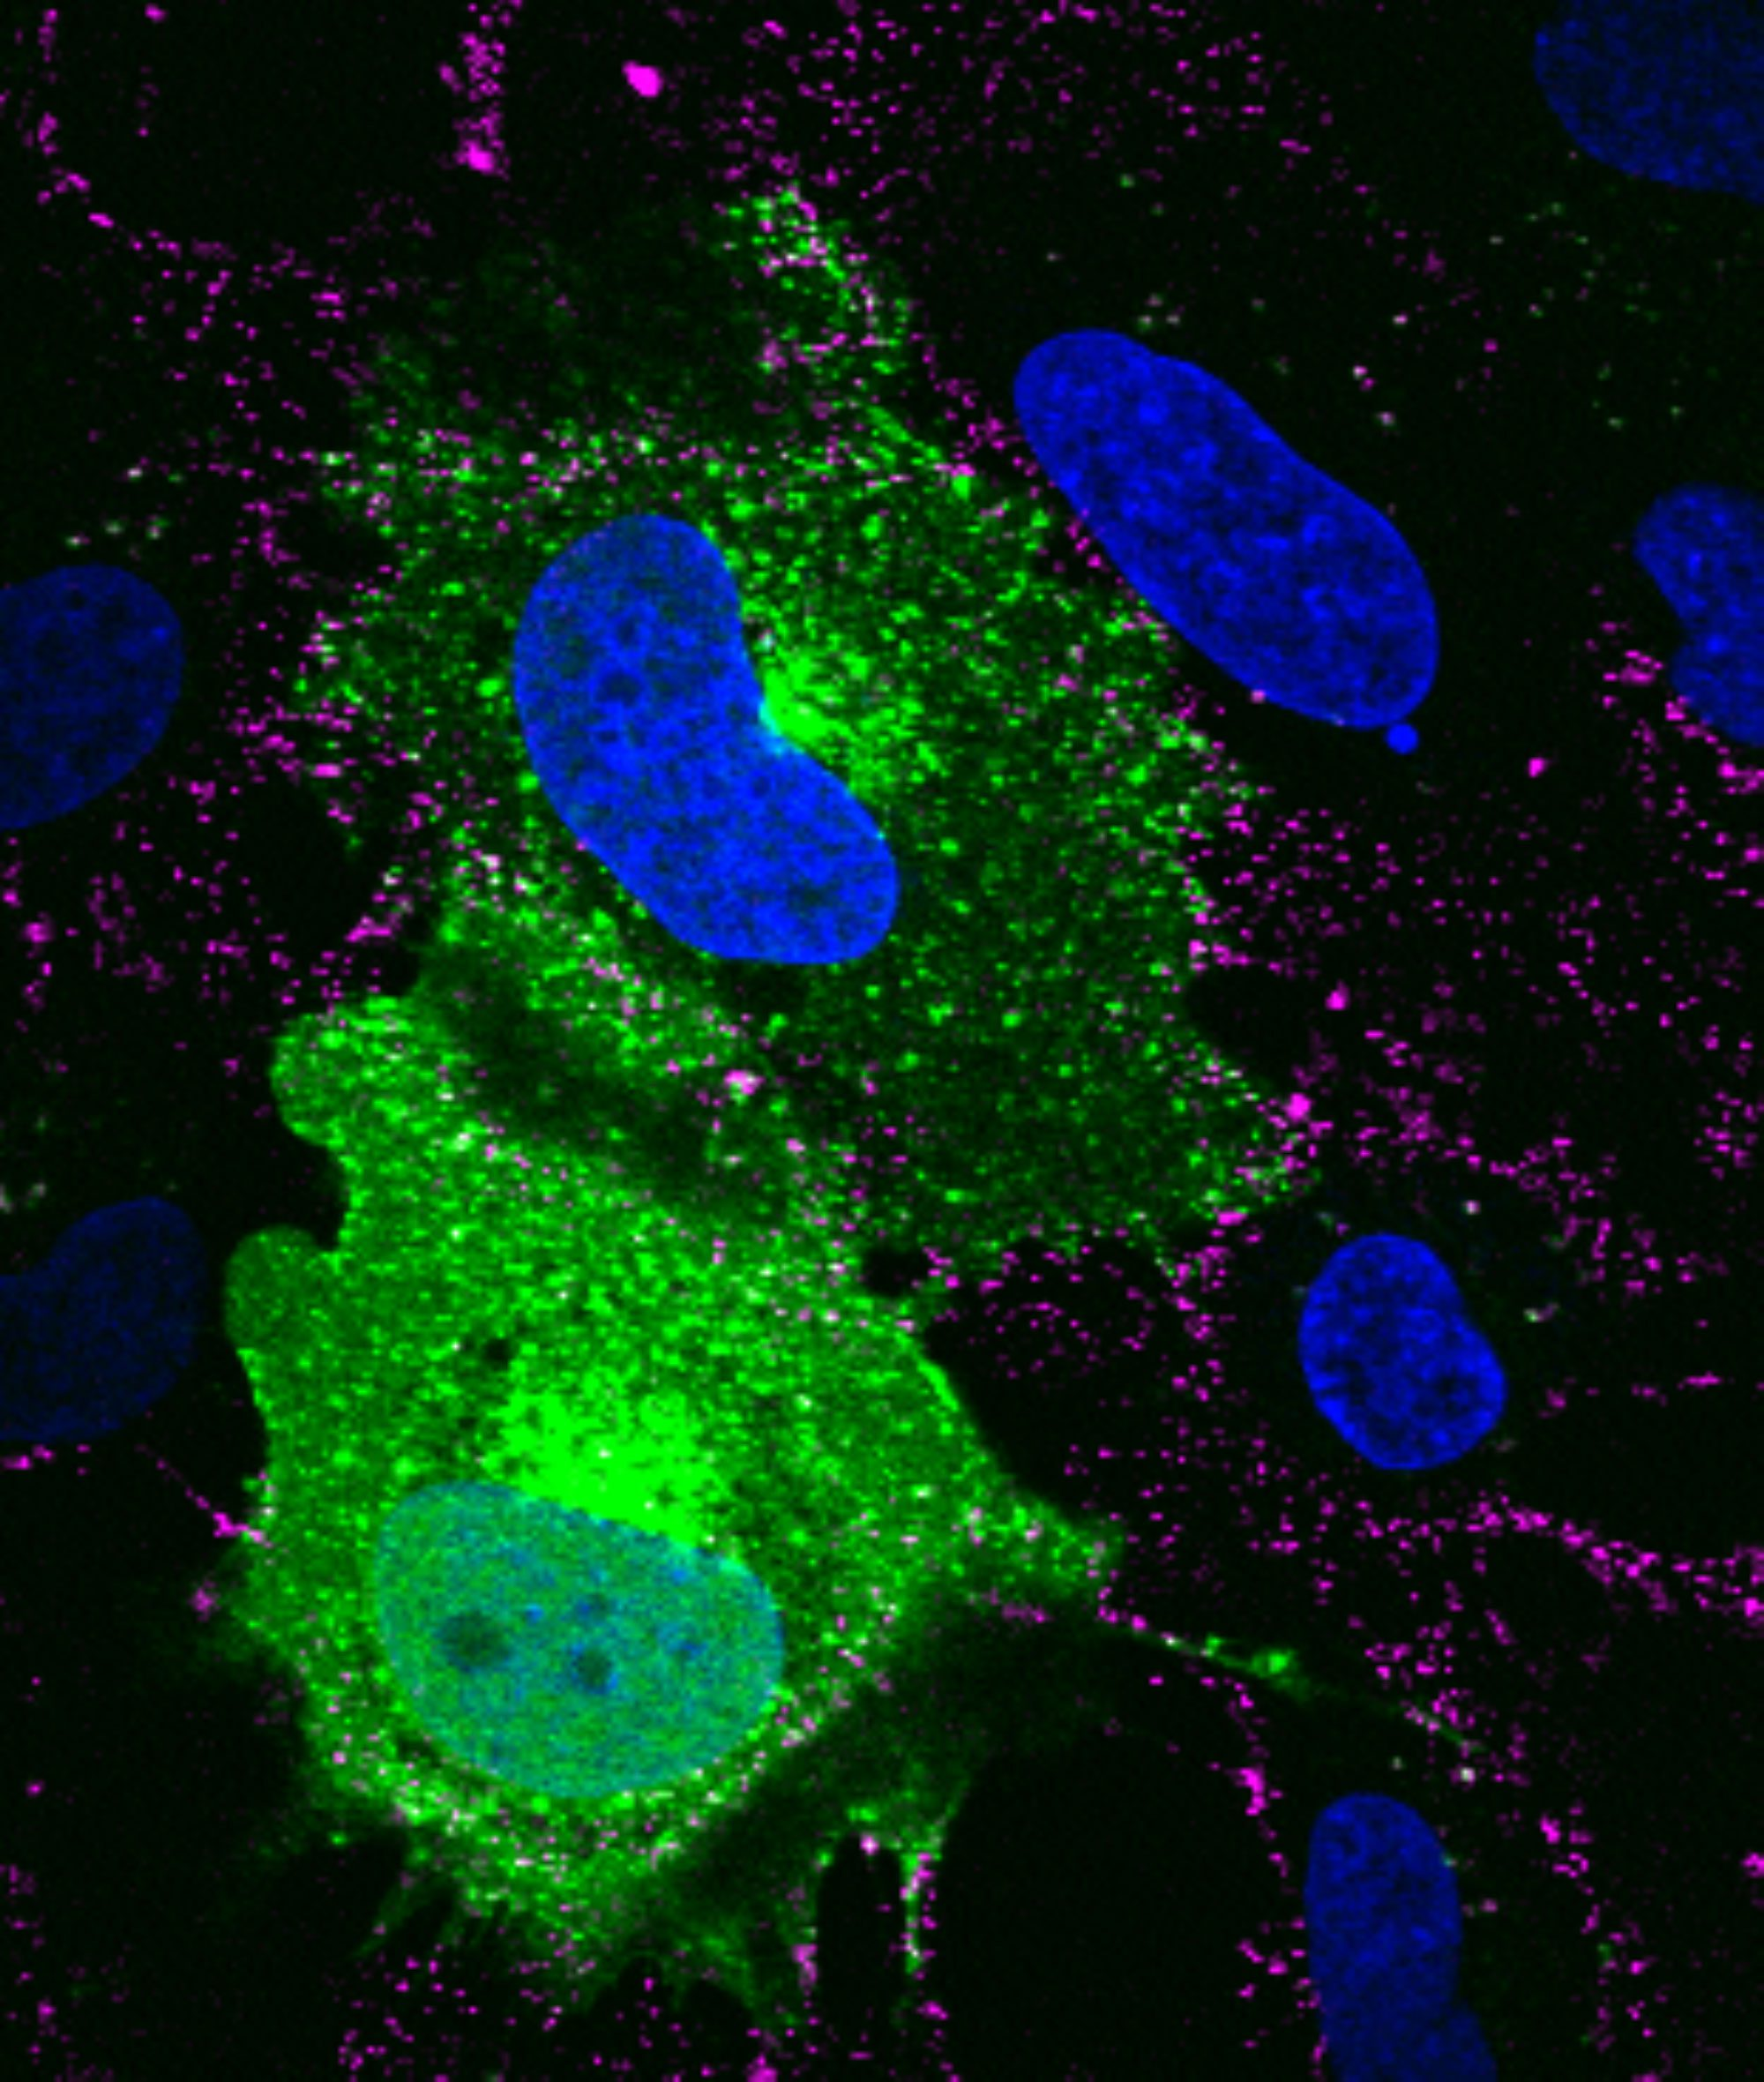 SVG-A glial cells transiently transfected with mEmerald clathrin (green), infected with JC polyomavirus labeled with Alexa Fluor 647 (pseudocolored magenta), 5 minutes post internalization. Nuclei are stained with DAPI (blue). Courtesy of Colleen Mayberry and Melissa Maginnis, University of Maine.